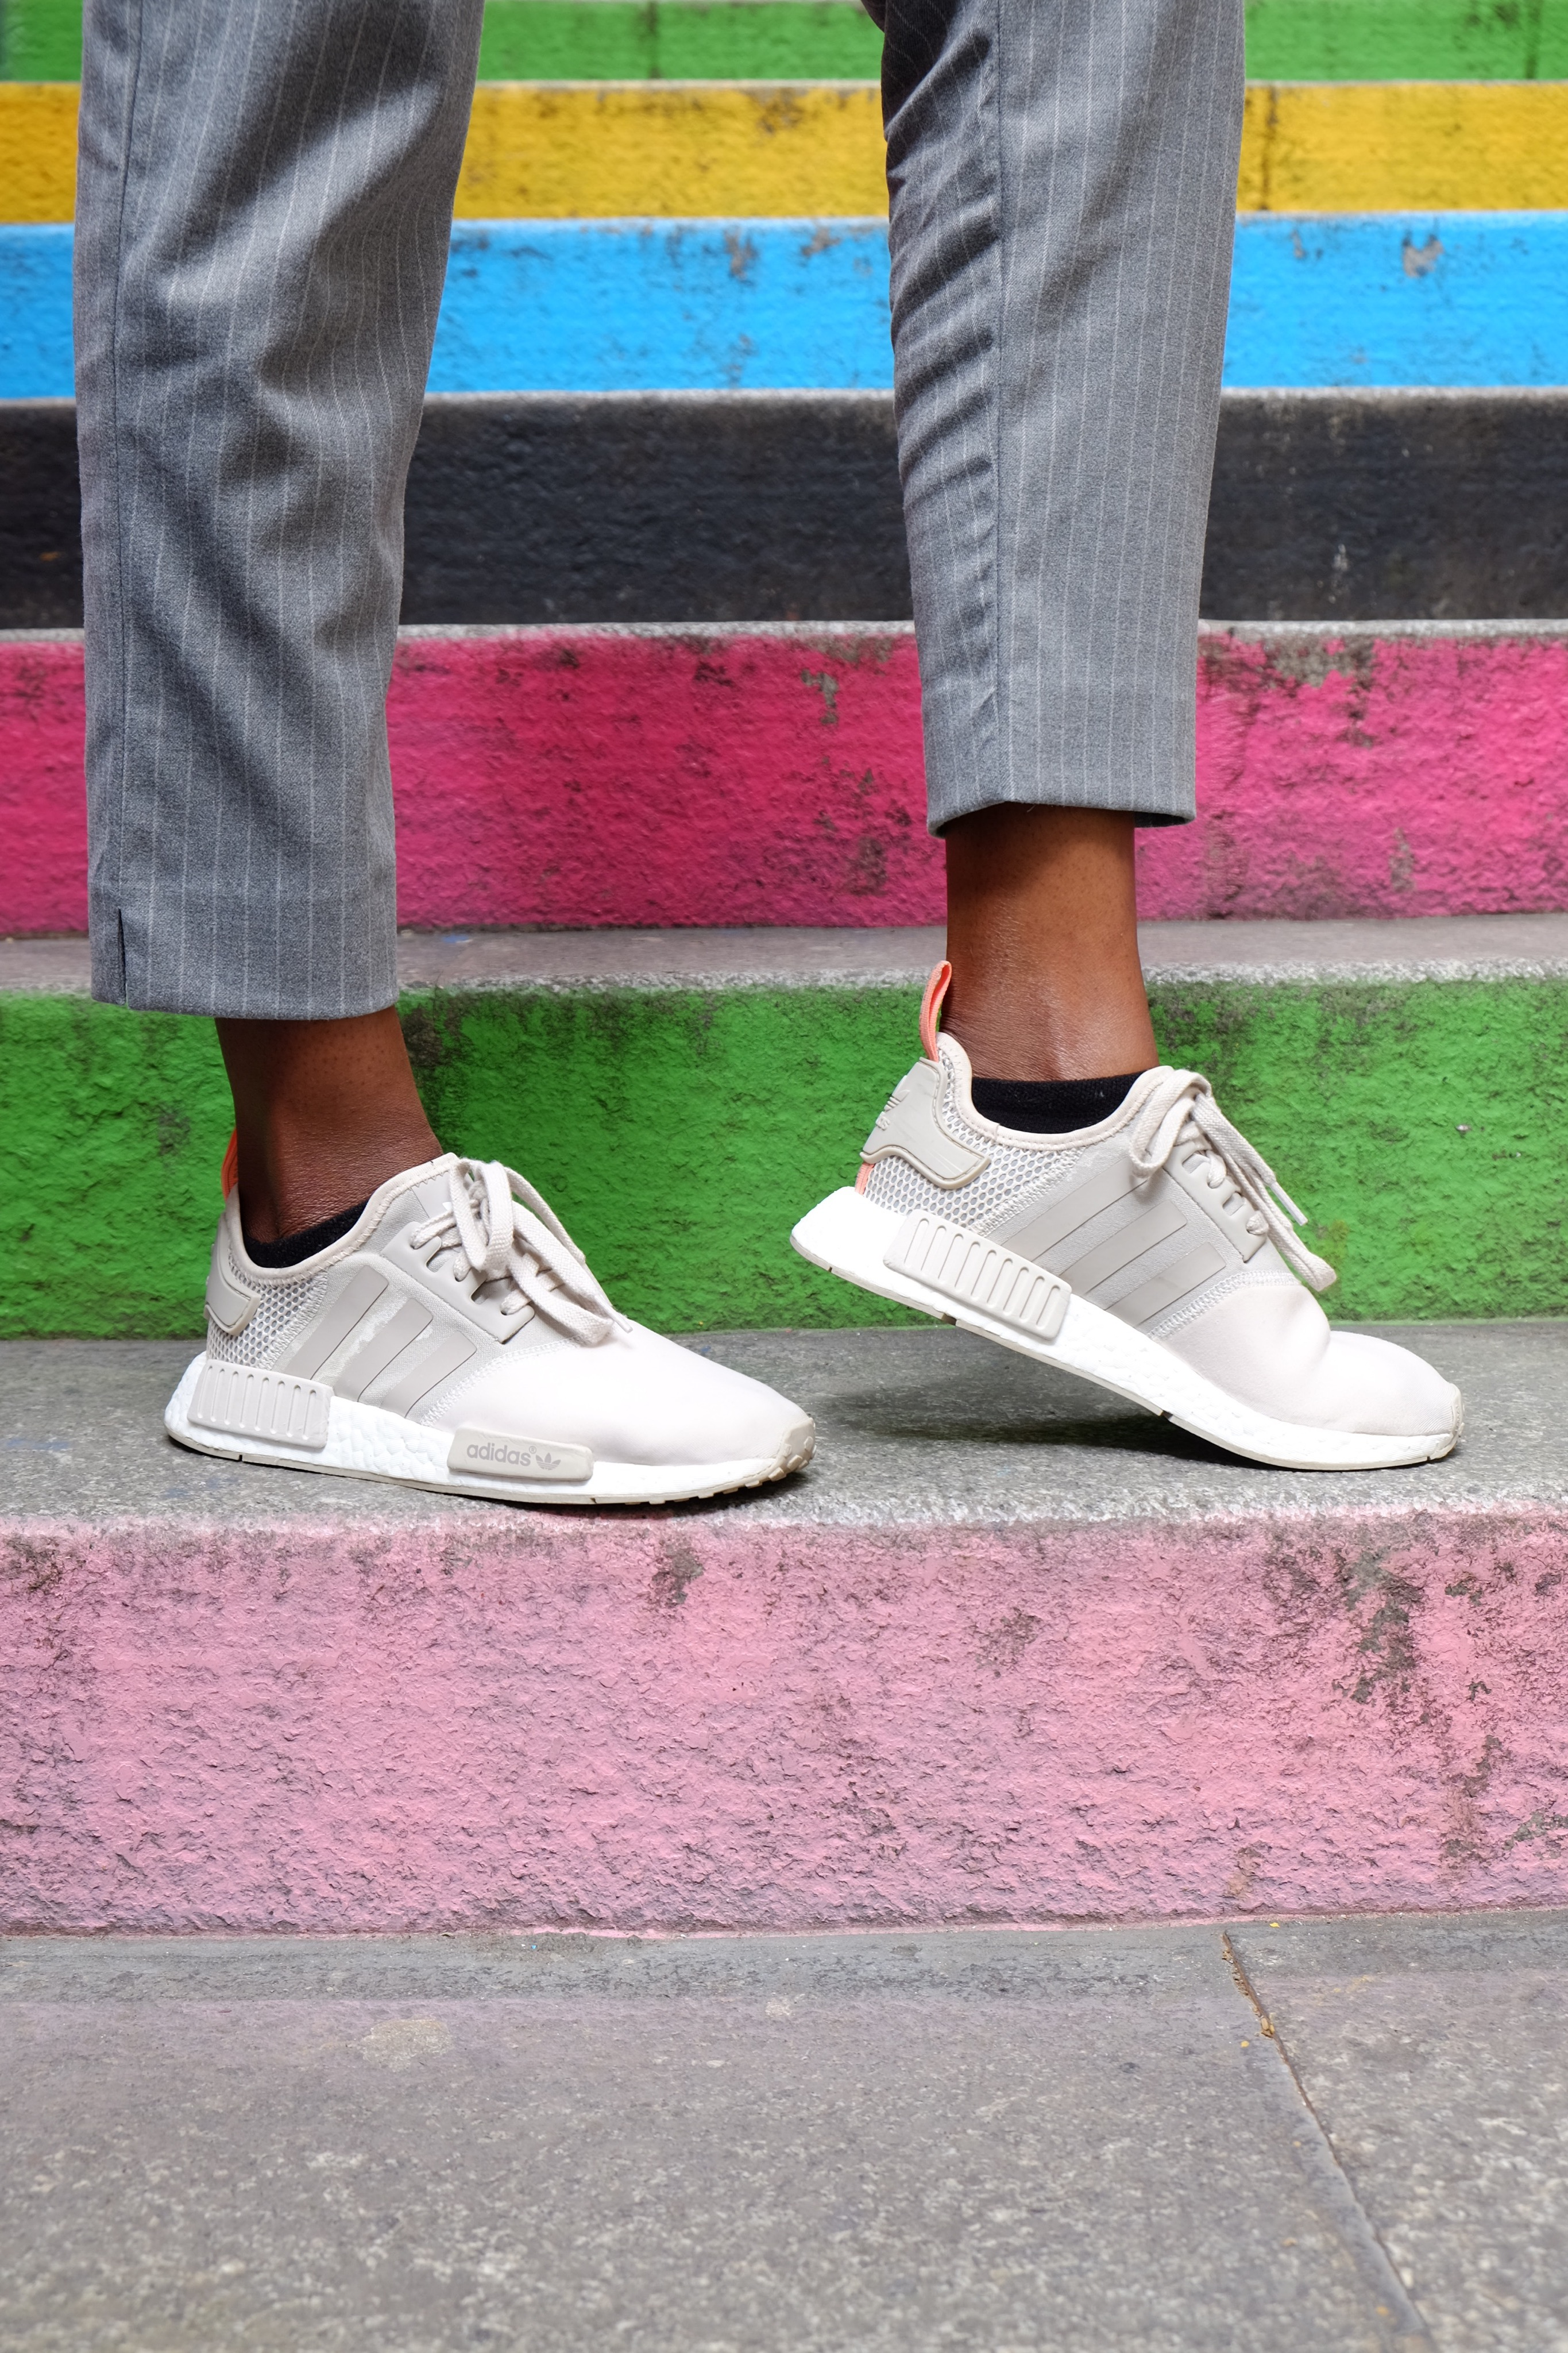 adidas-nmd-stipes-outfit